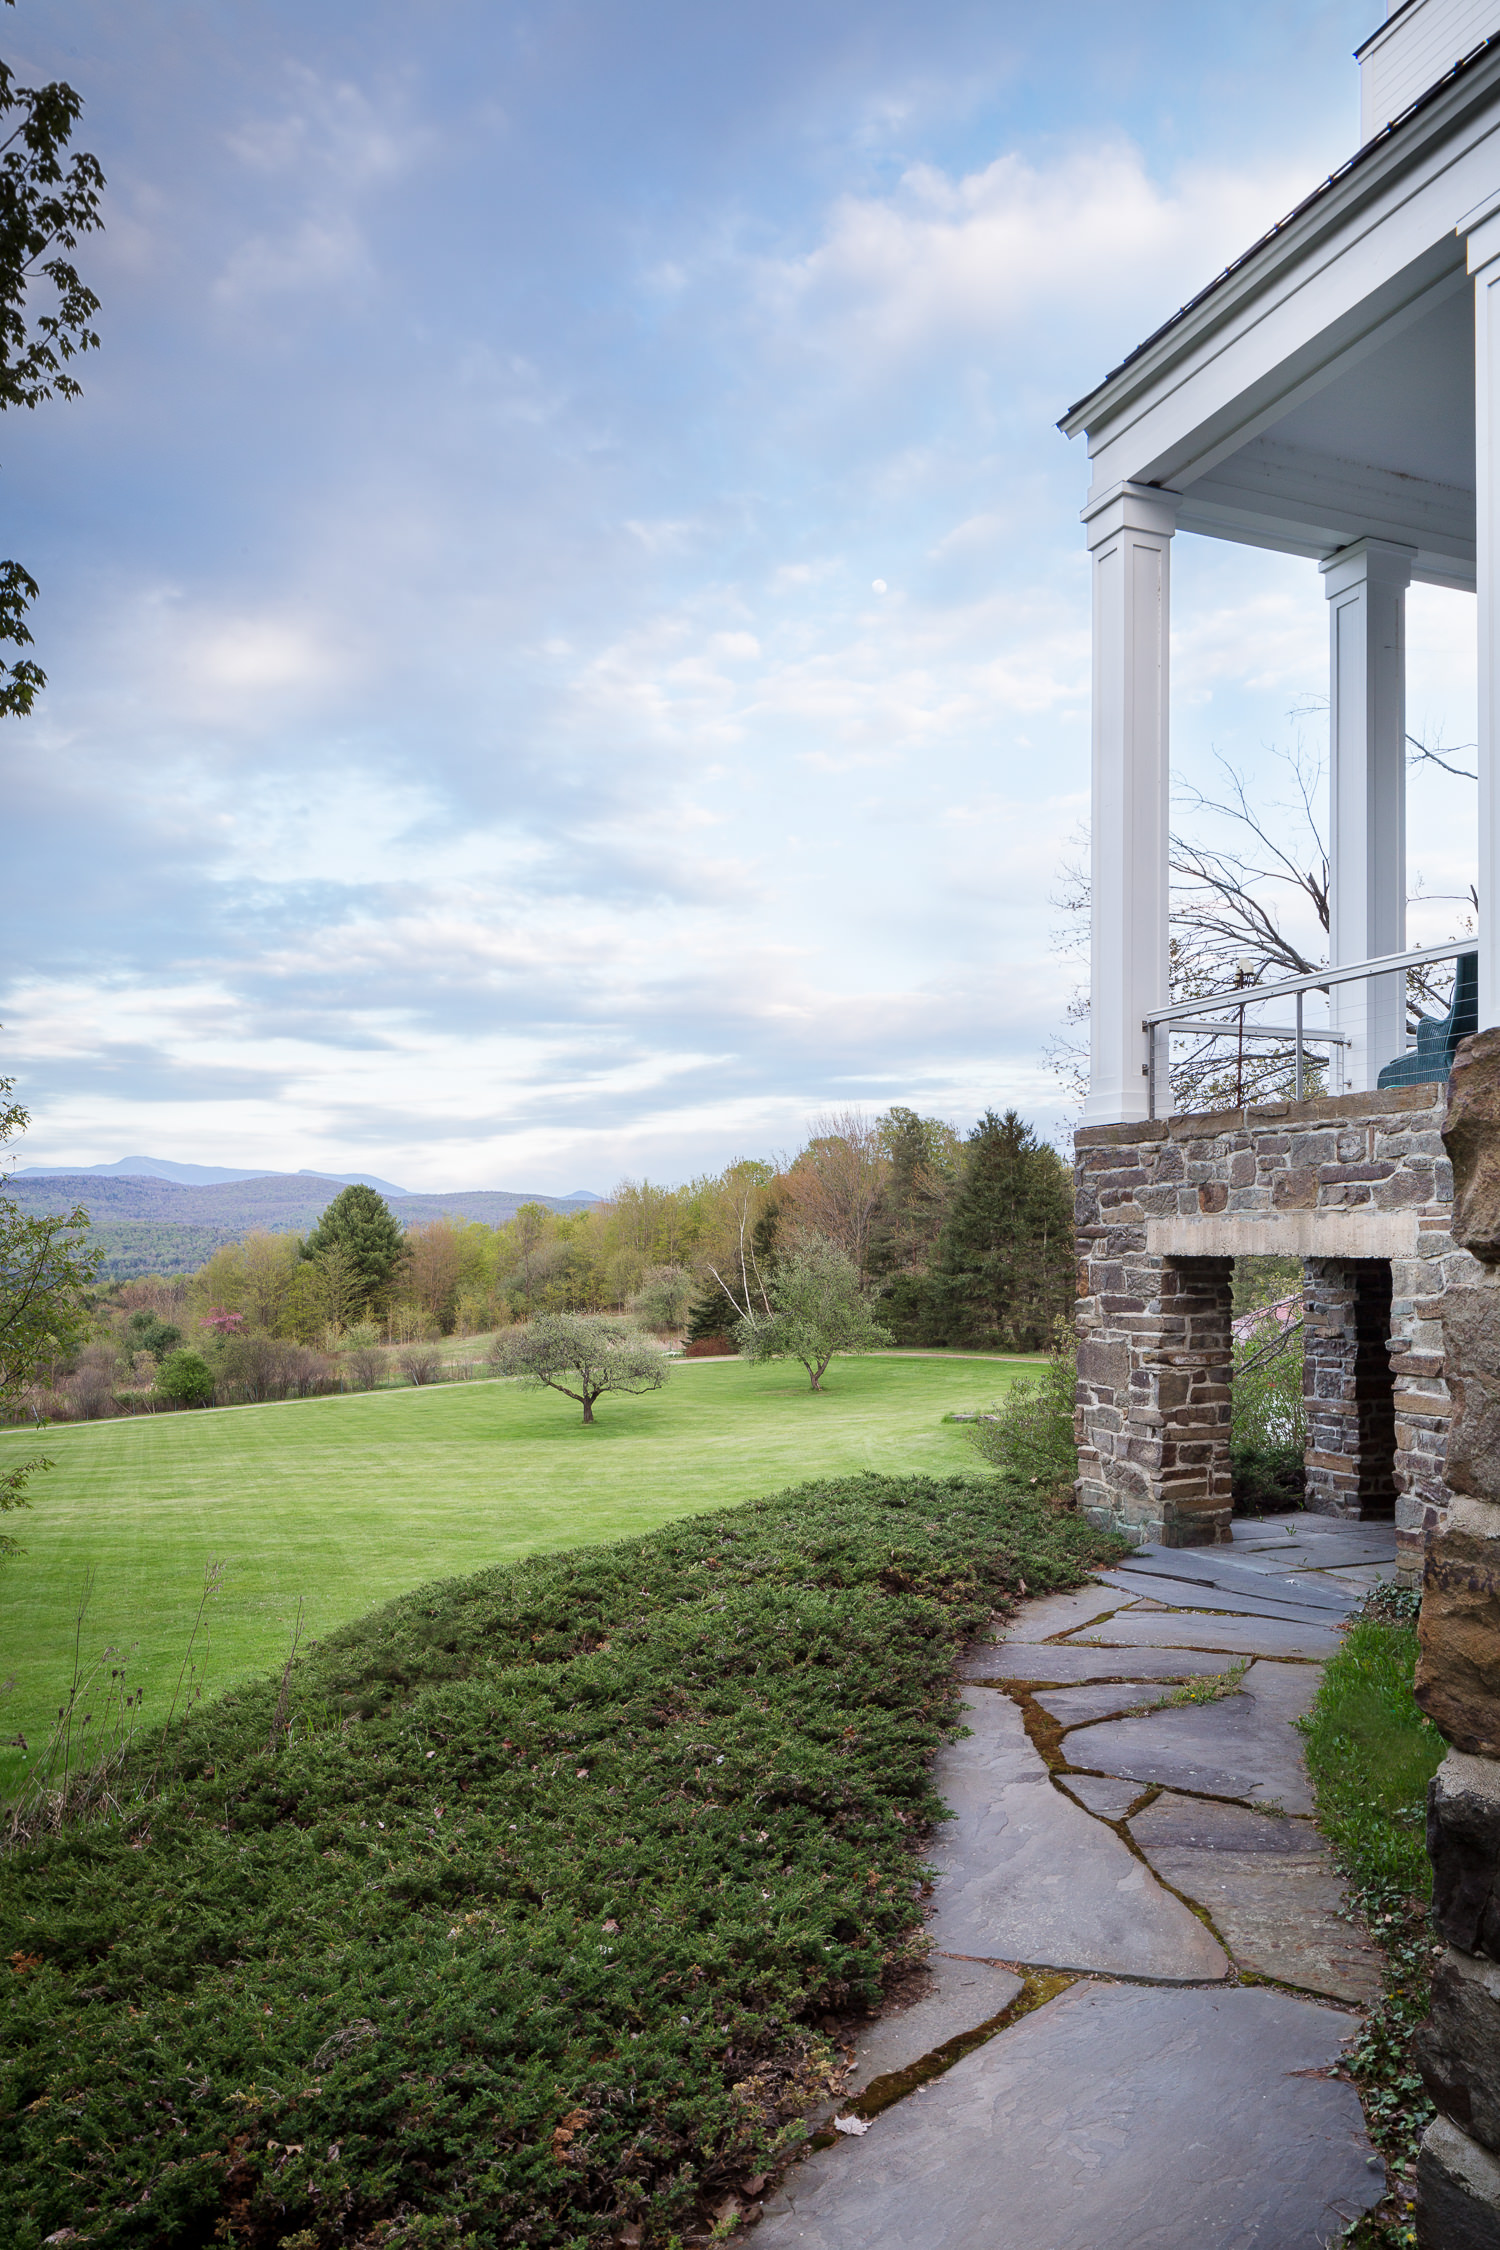 A winding stone walkway and the backyard view at the Woods Hollow vacation rental in Westford VT taken during an architecture photography session by Vermont commercial photographer Stina Booth of Studio SB.